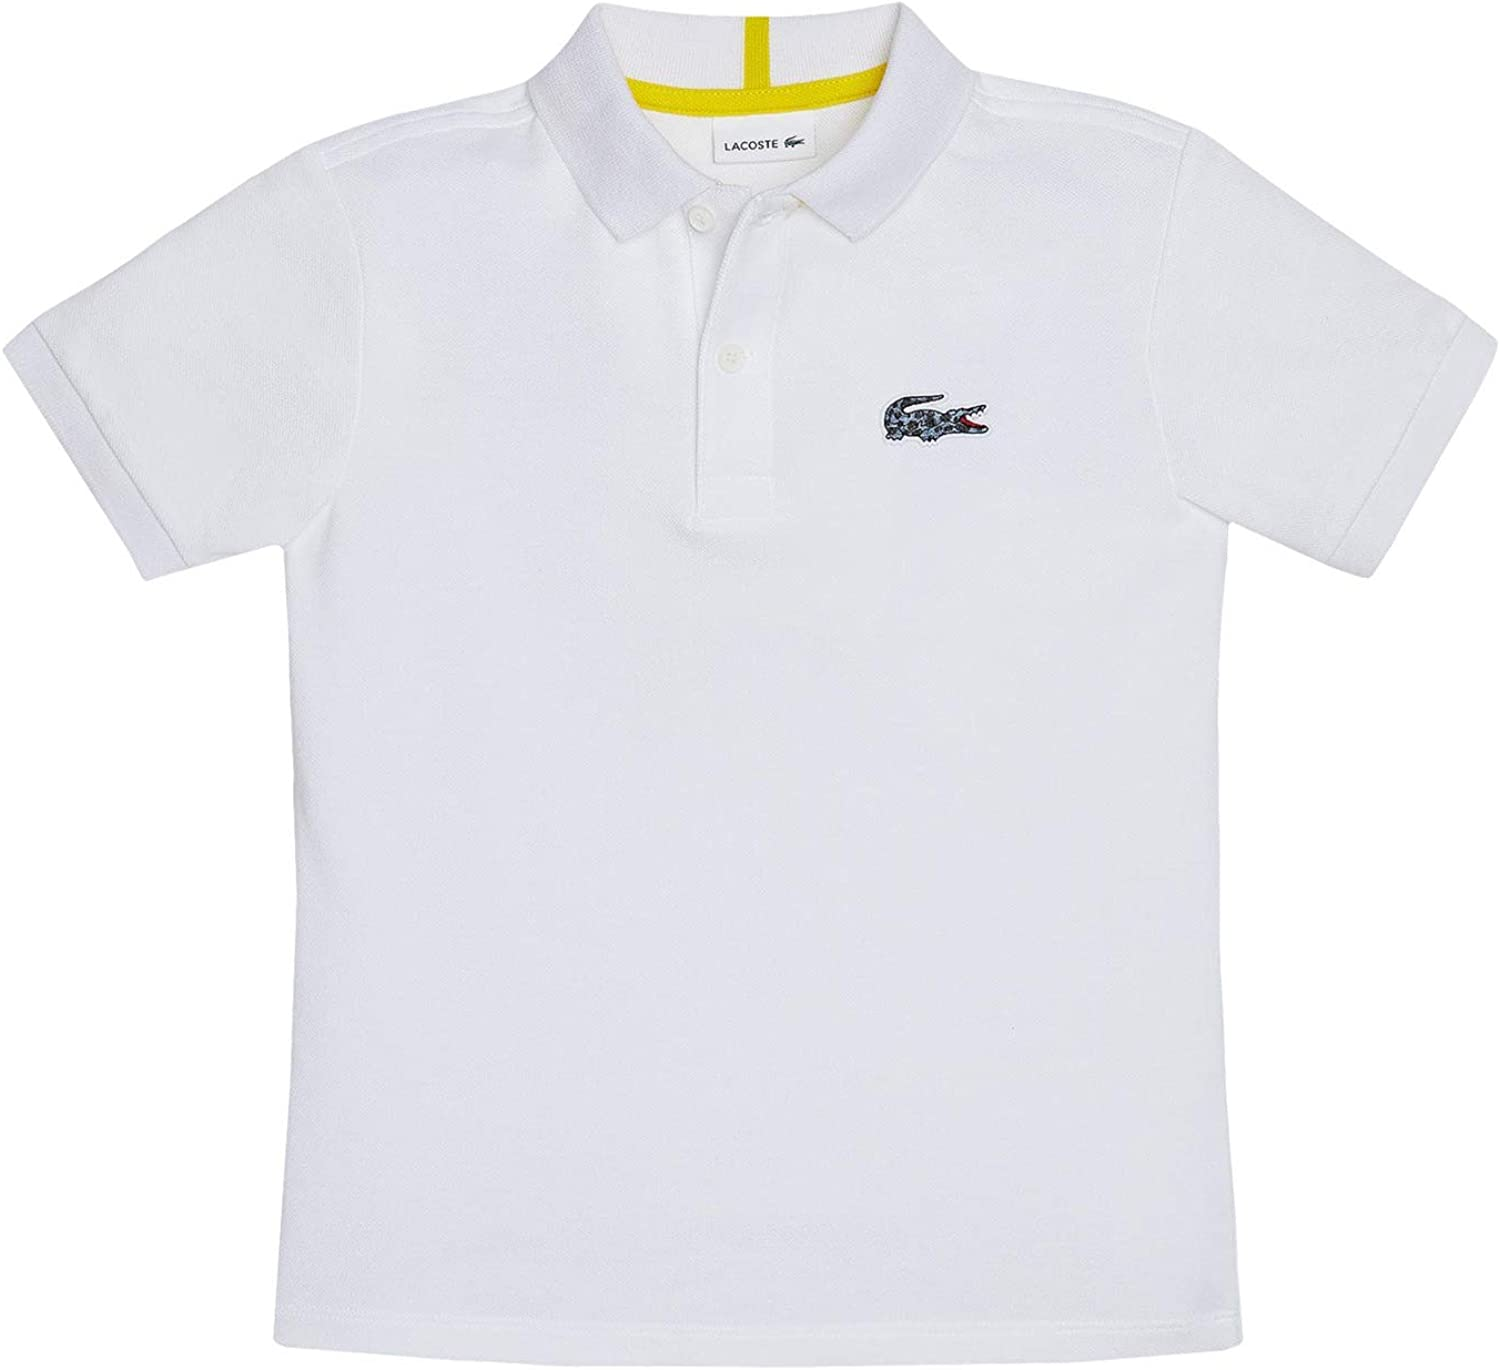 Lacoste Boys National Geographic Croc Polo Shirt